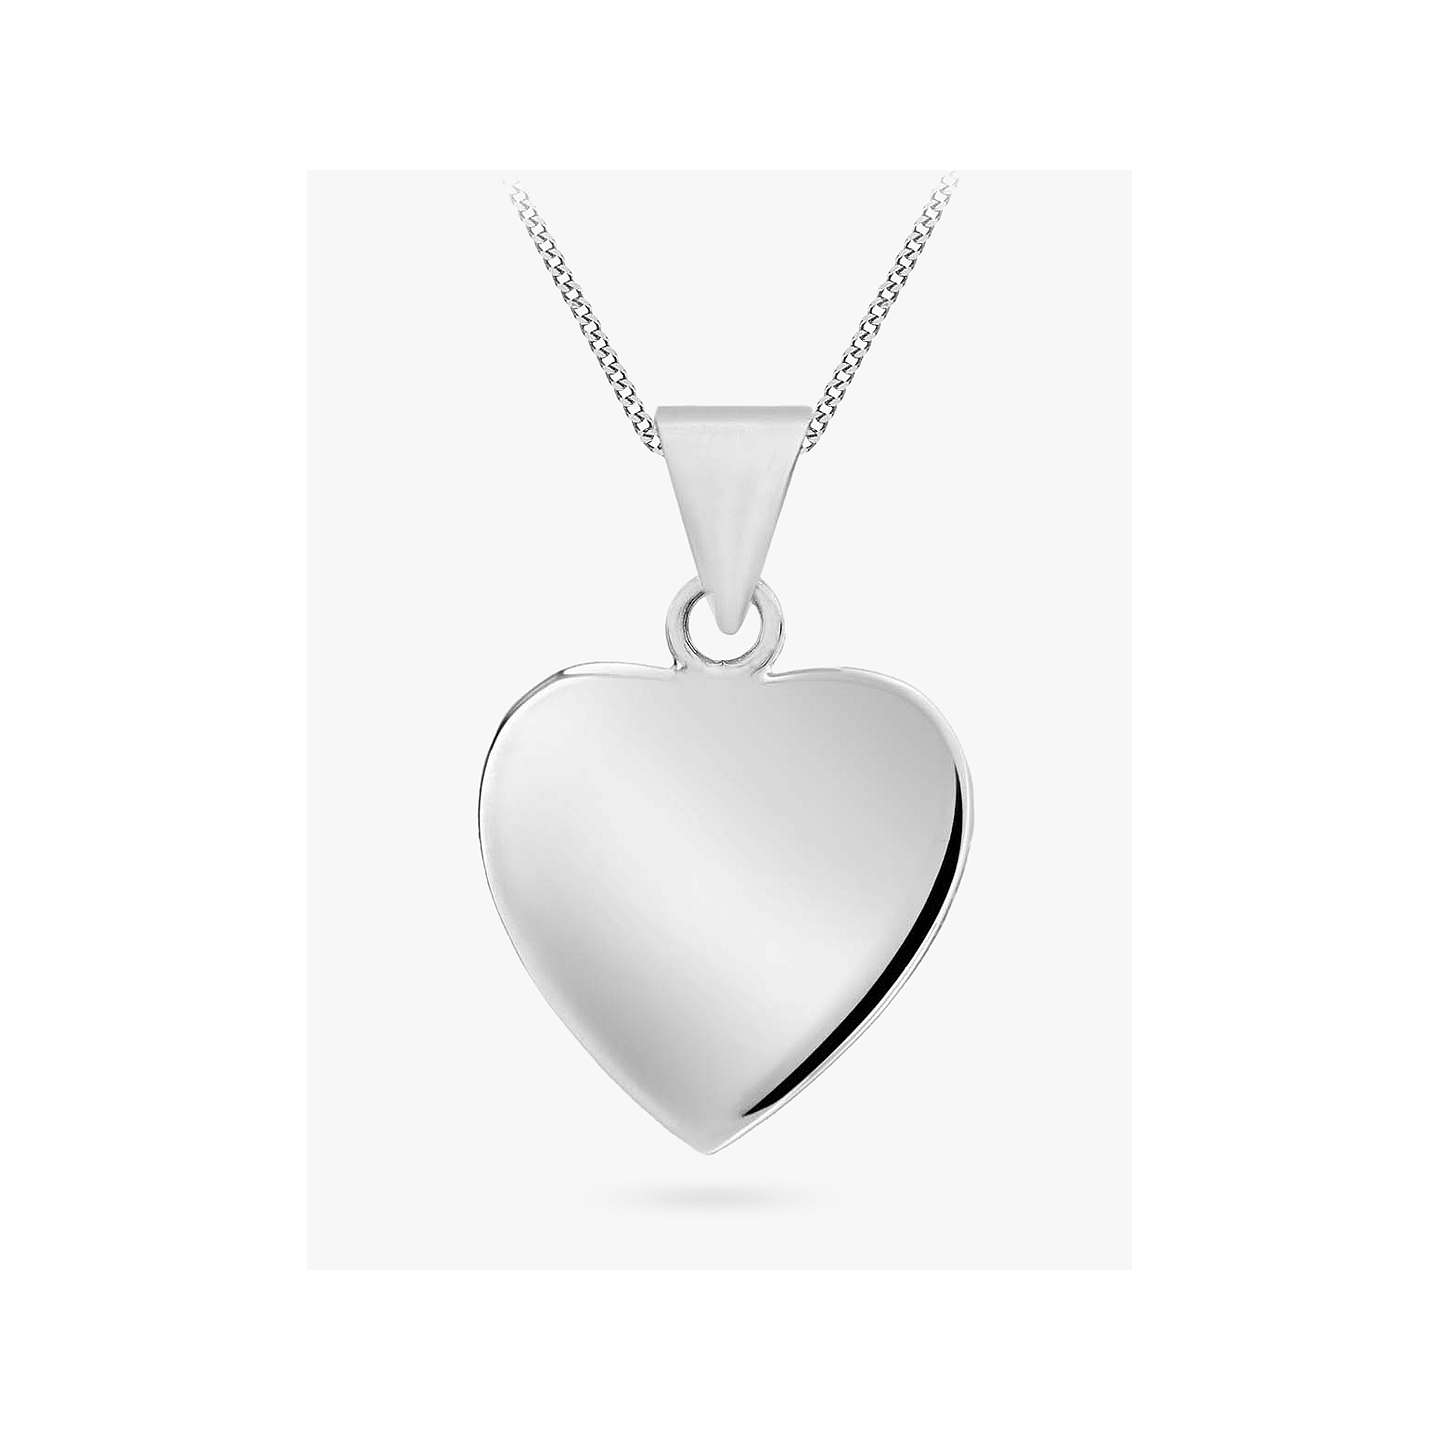 silver personalisedengraved sterling personalised necklace heart